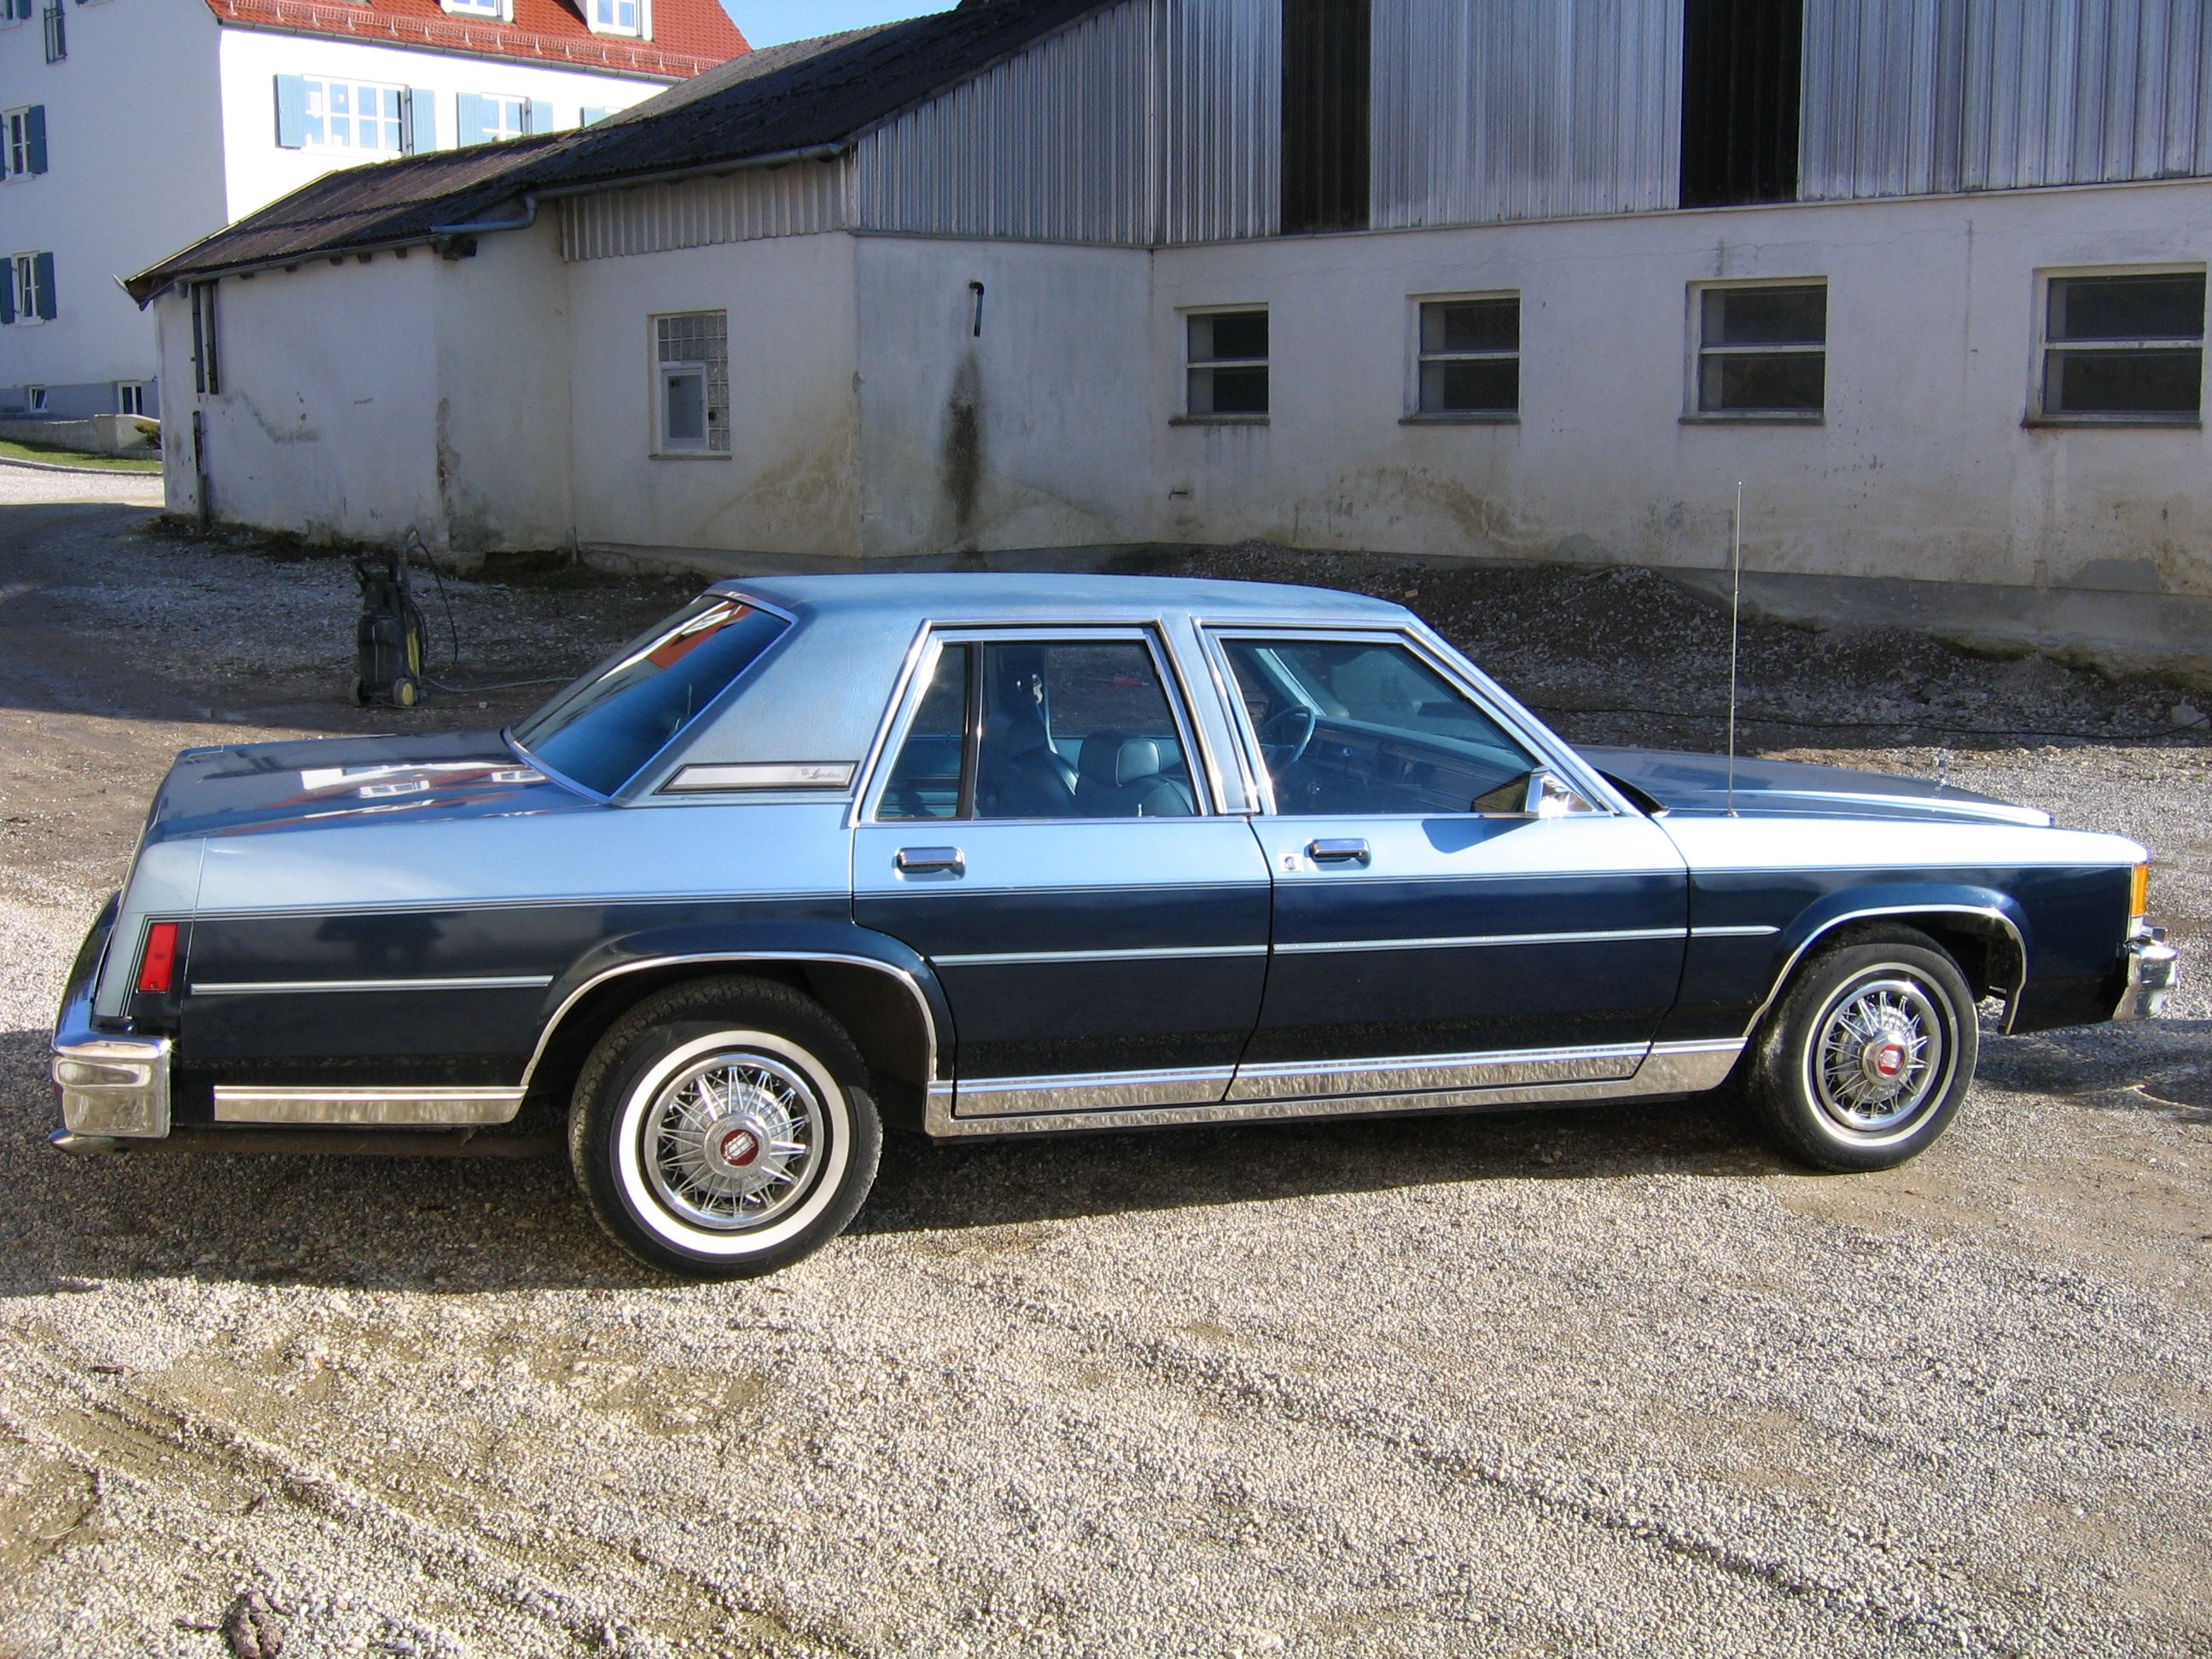 1979 Lincoln Continental Town Car Collector S Series In 1979 A Collector S Series Option Package Was Avail Lincoln Town Car Lincoln Cars Lincoln Continental